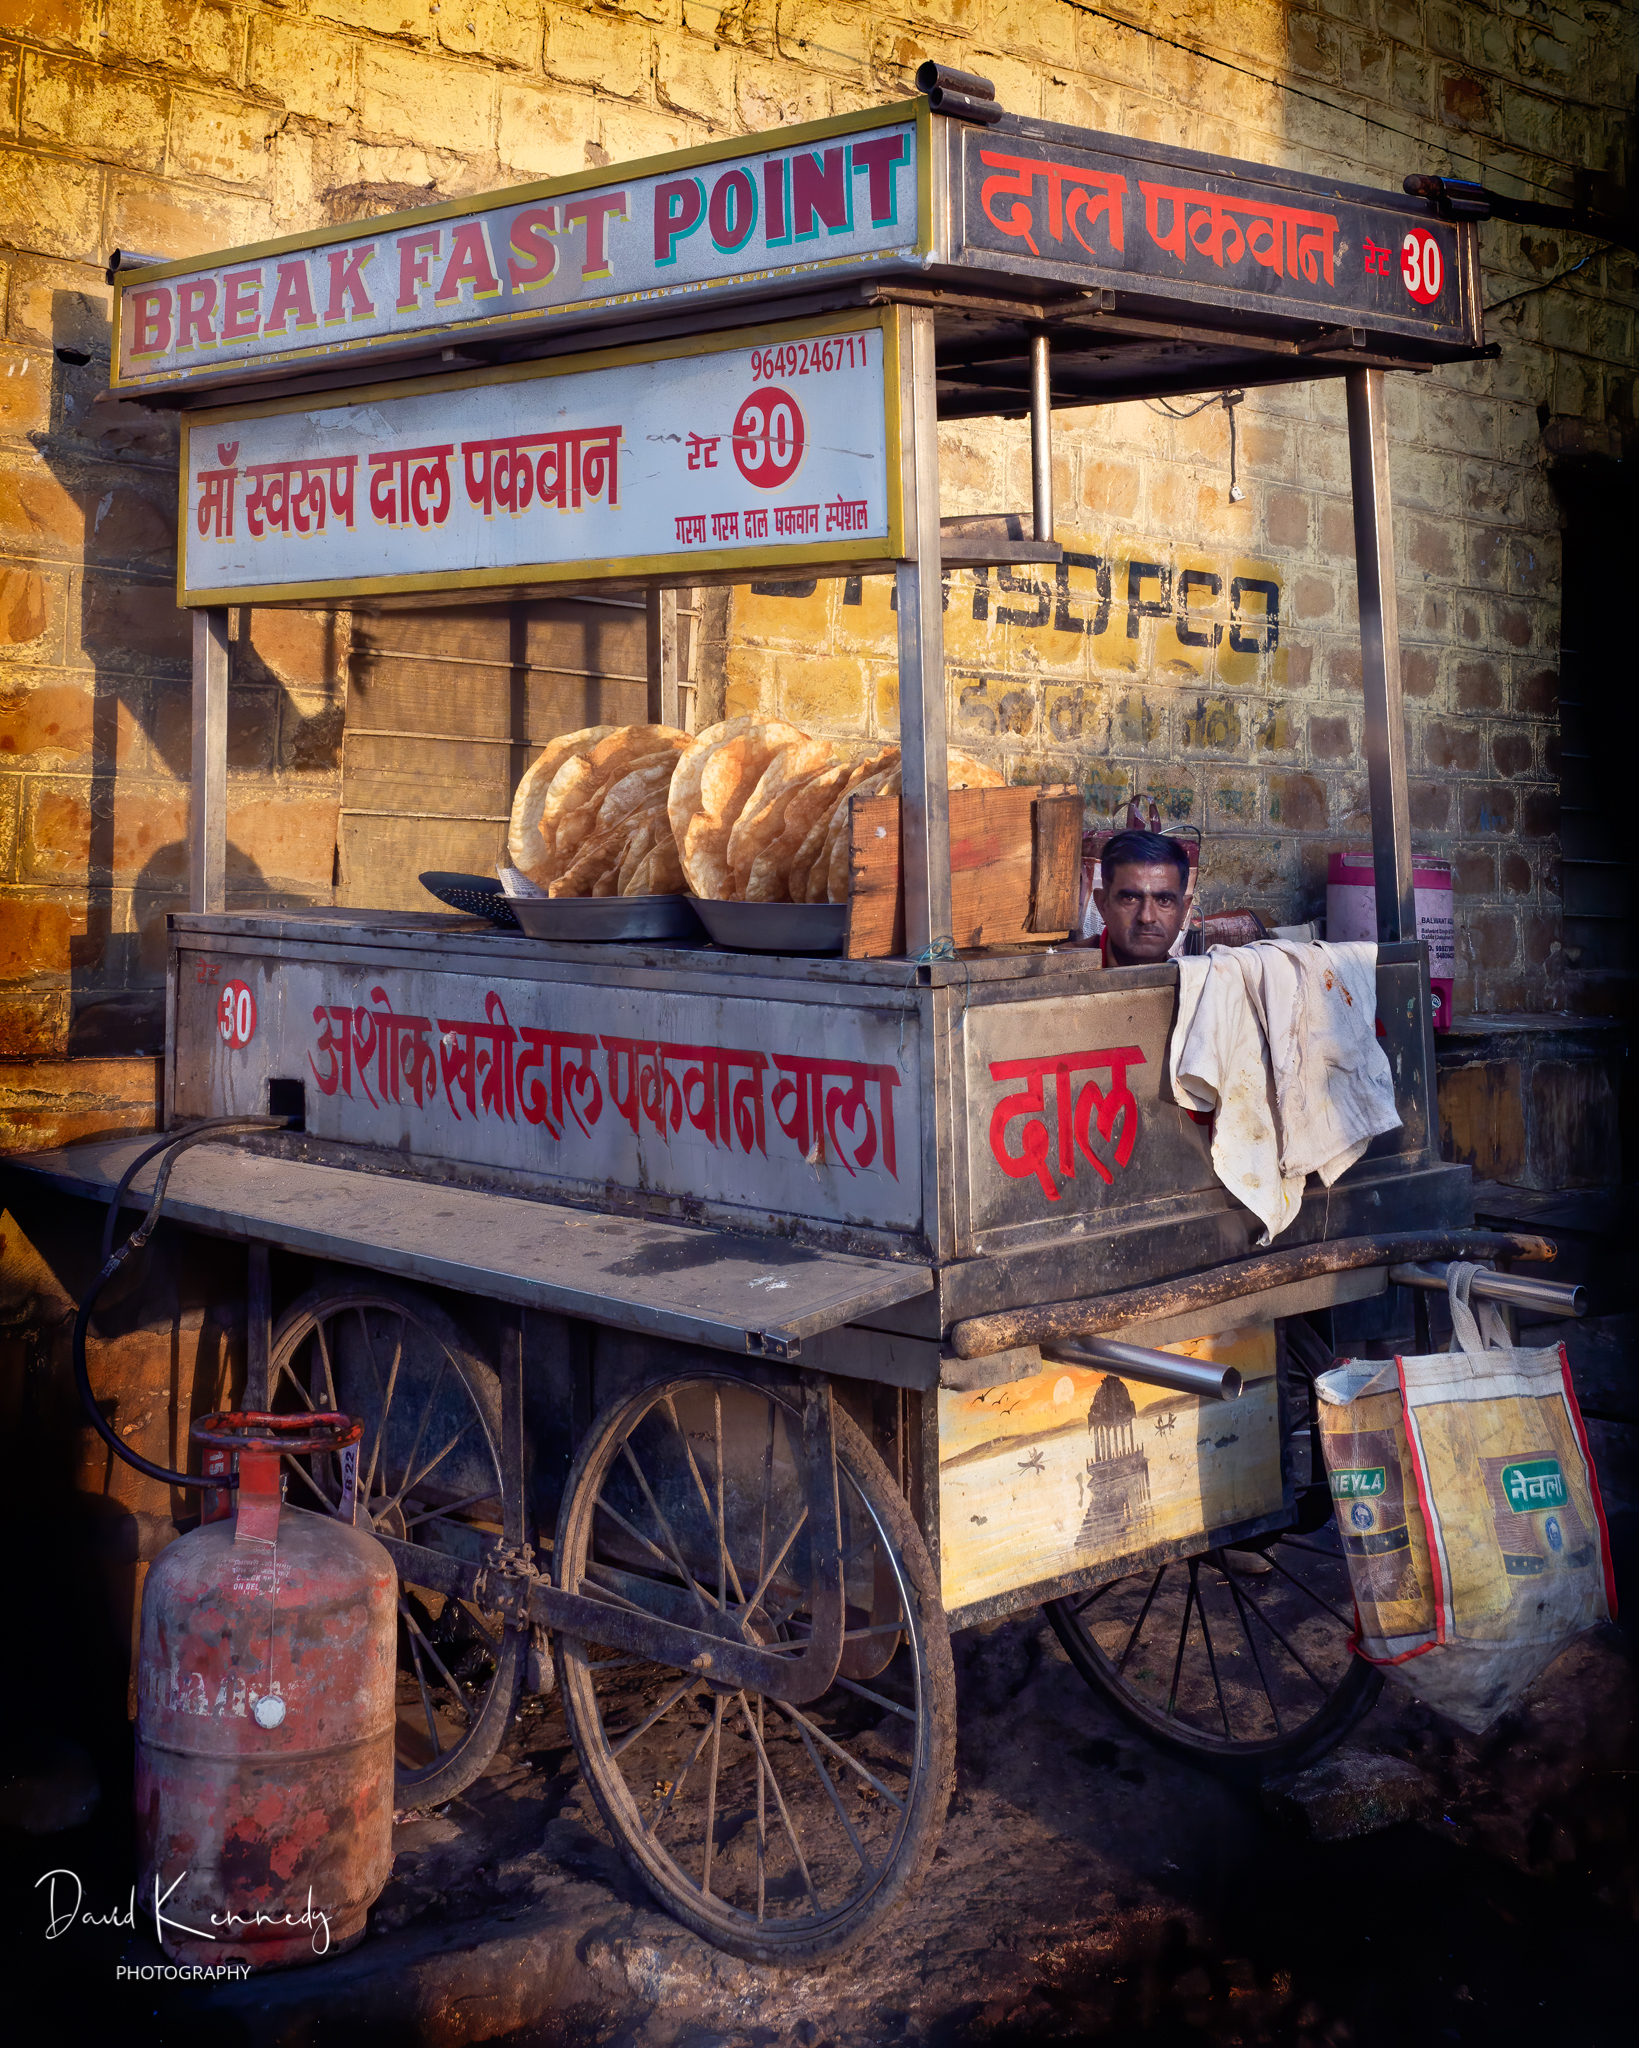 Street stall selling breakfast food in India